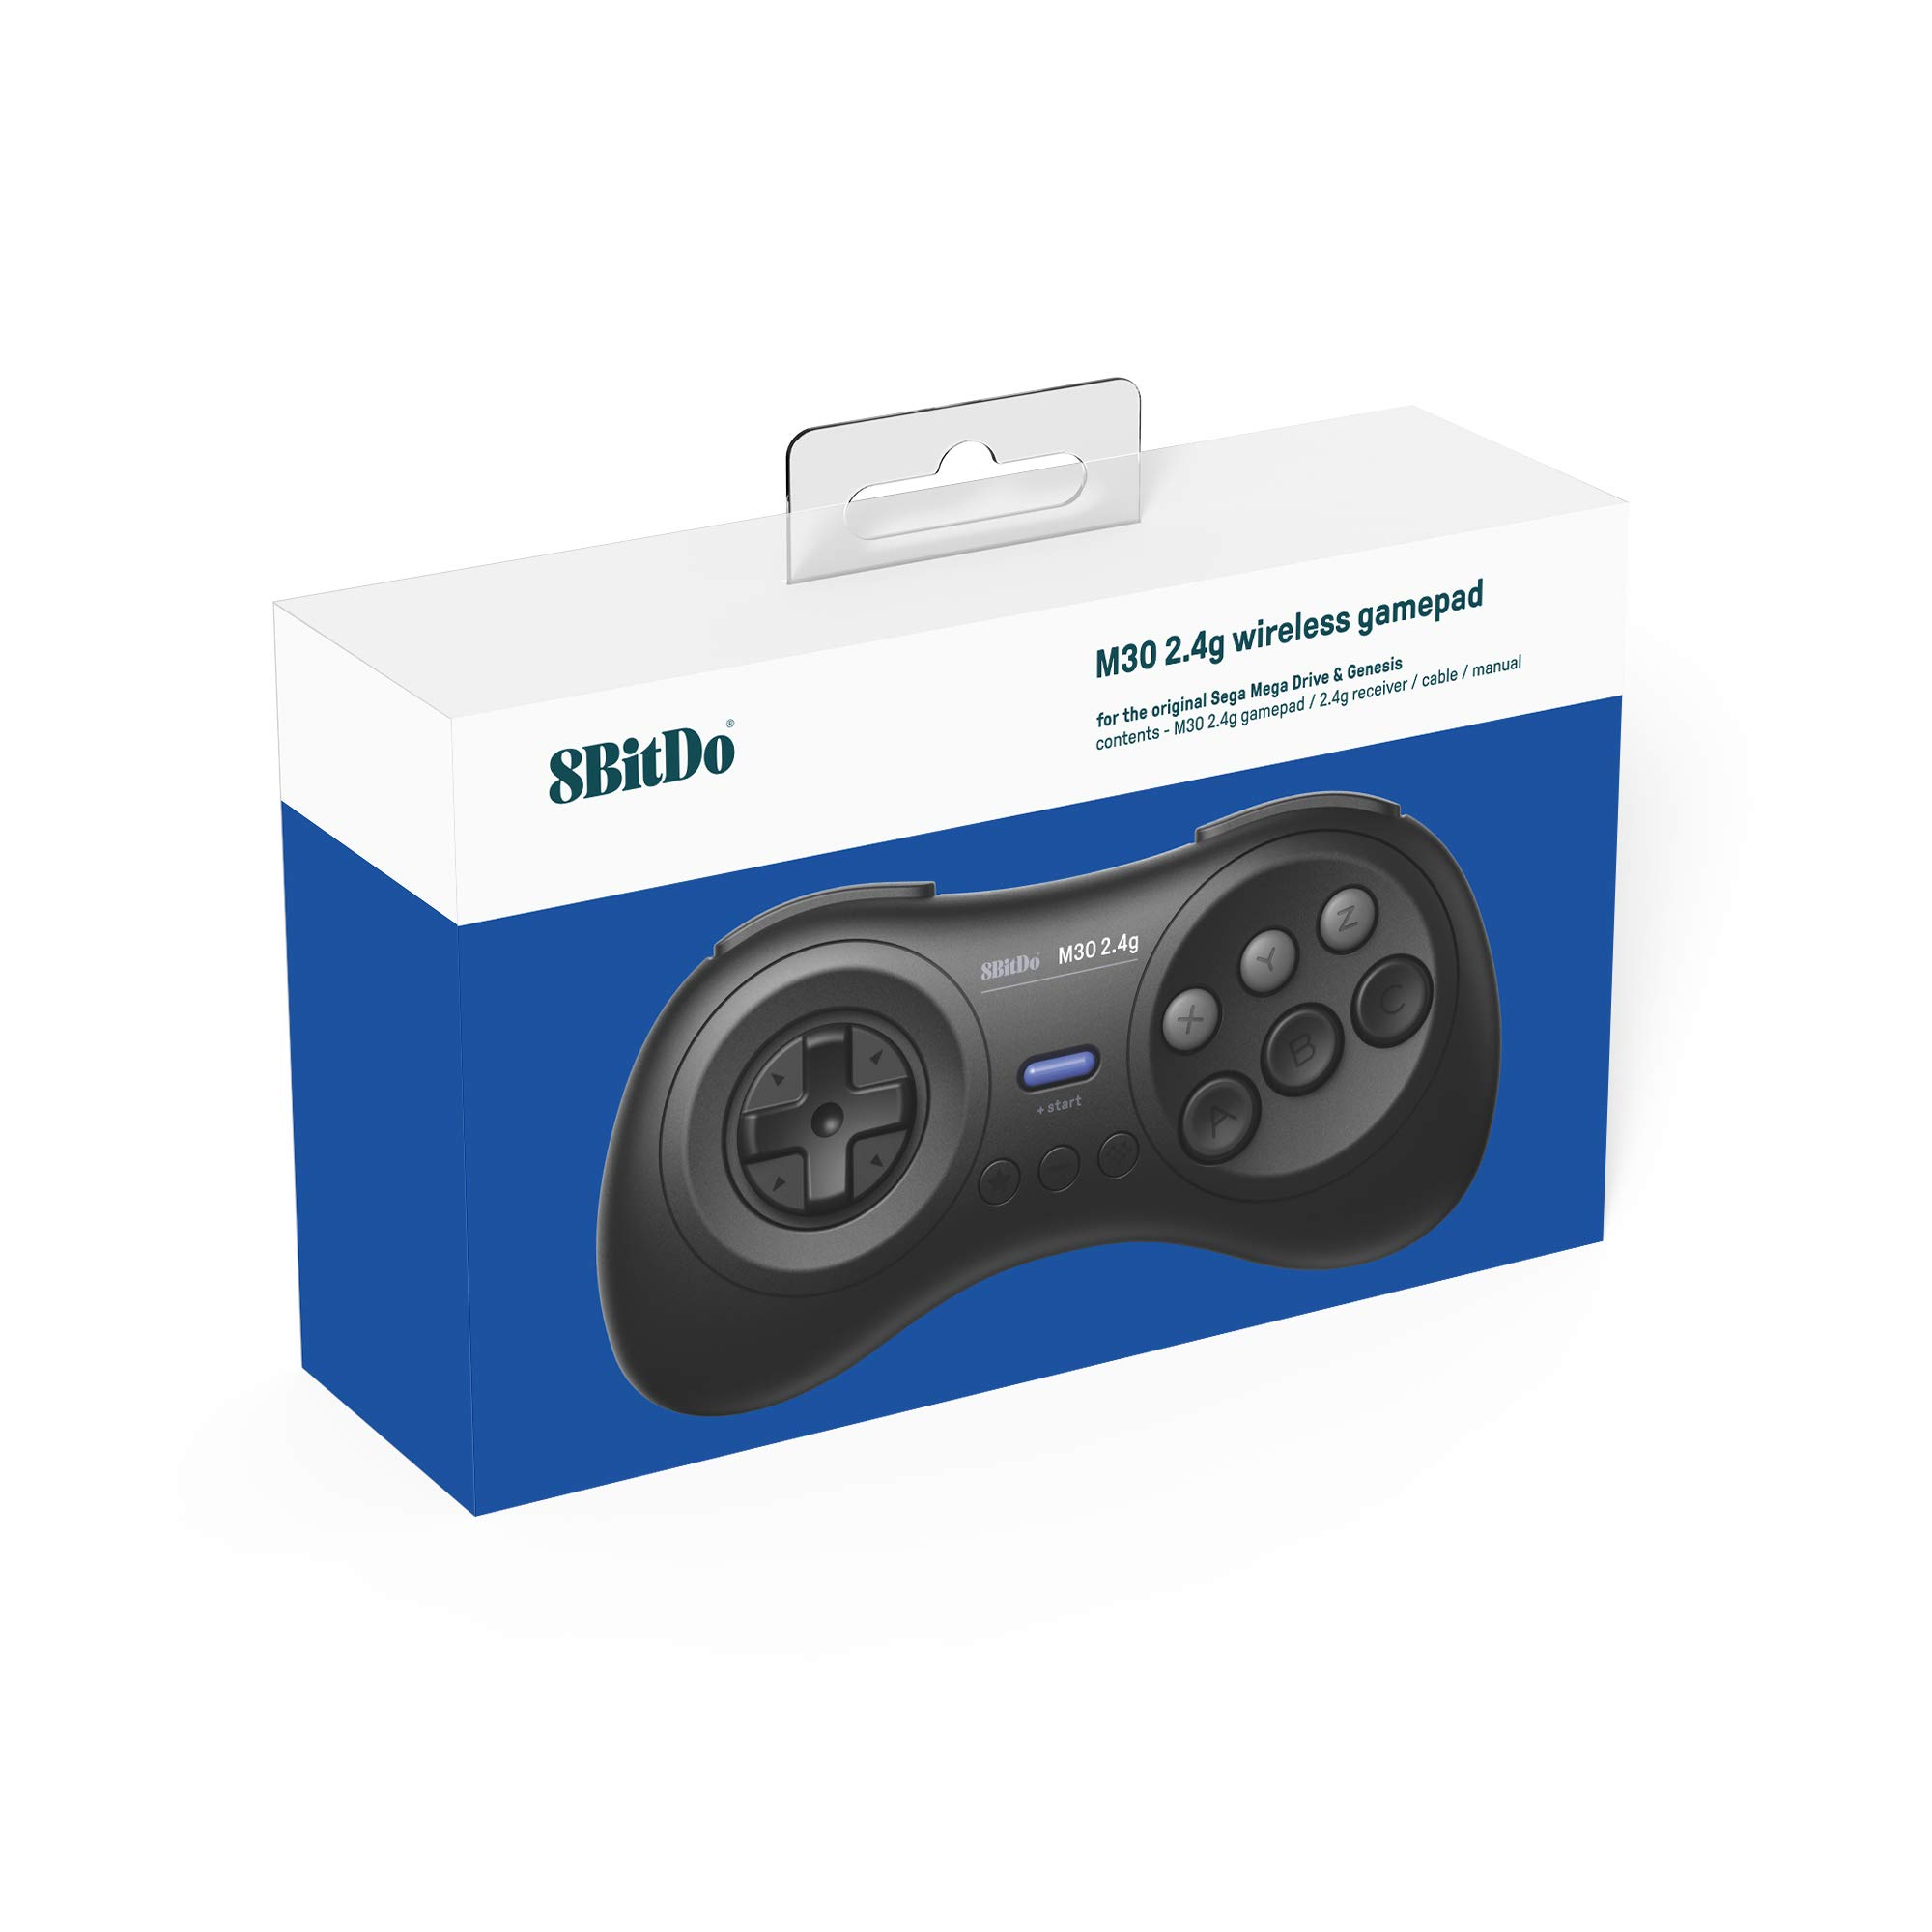 8Bitdo M30 2.4G Wireless Gamepad for the Original Sega Genesis and Sega Mega Drive - Sega Genesis,Black by 8Bitdo (Image #4)